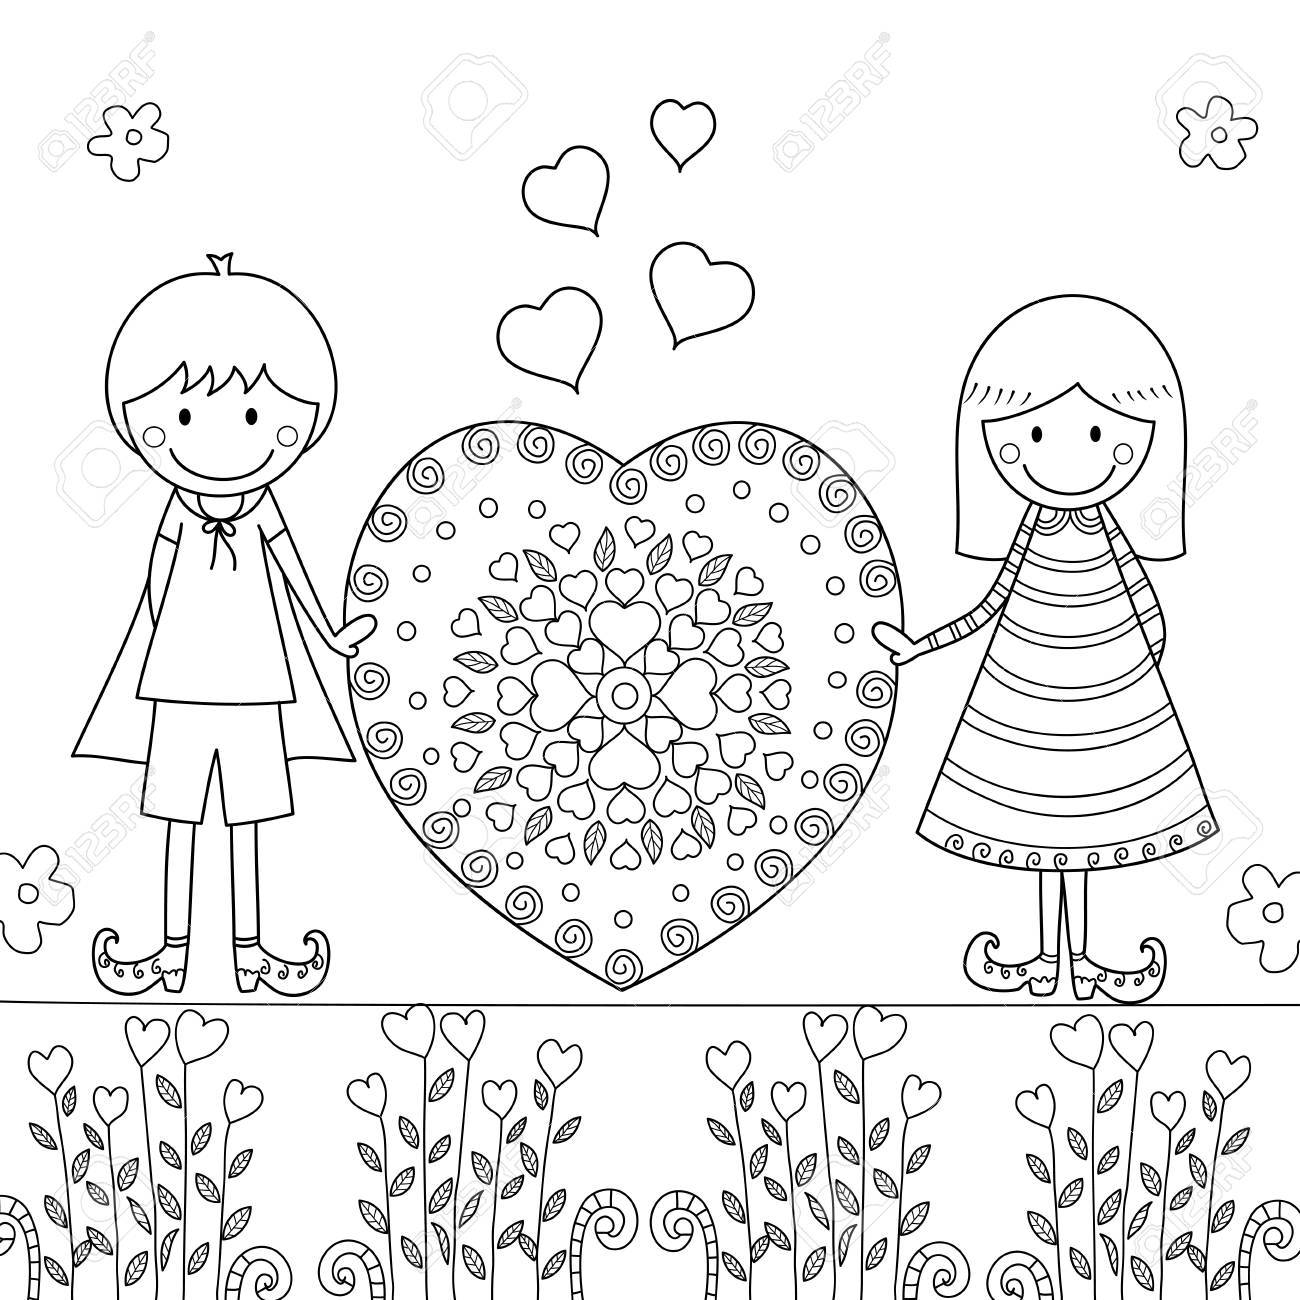 - Boy And Girl With Love In Valentine's Day Coloring Book For